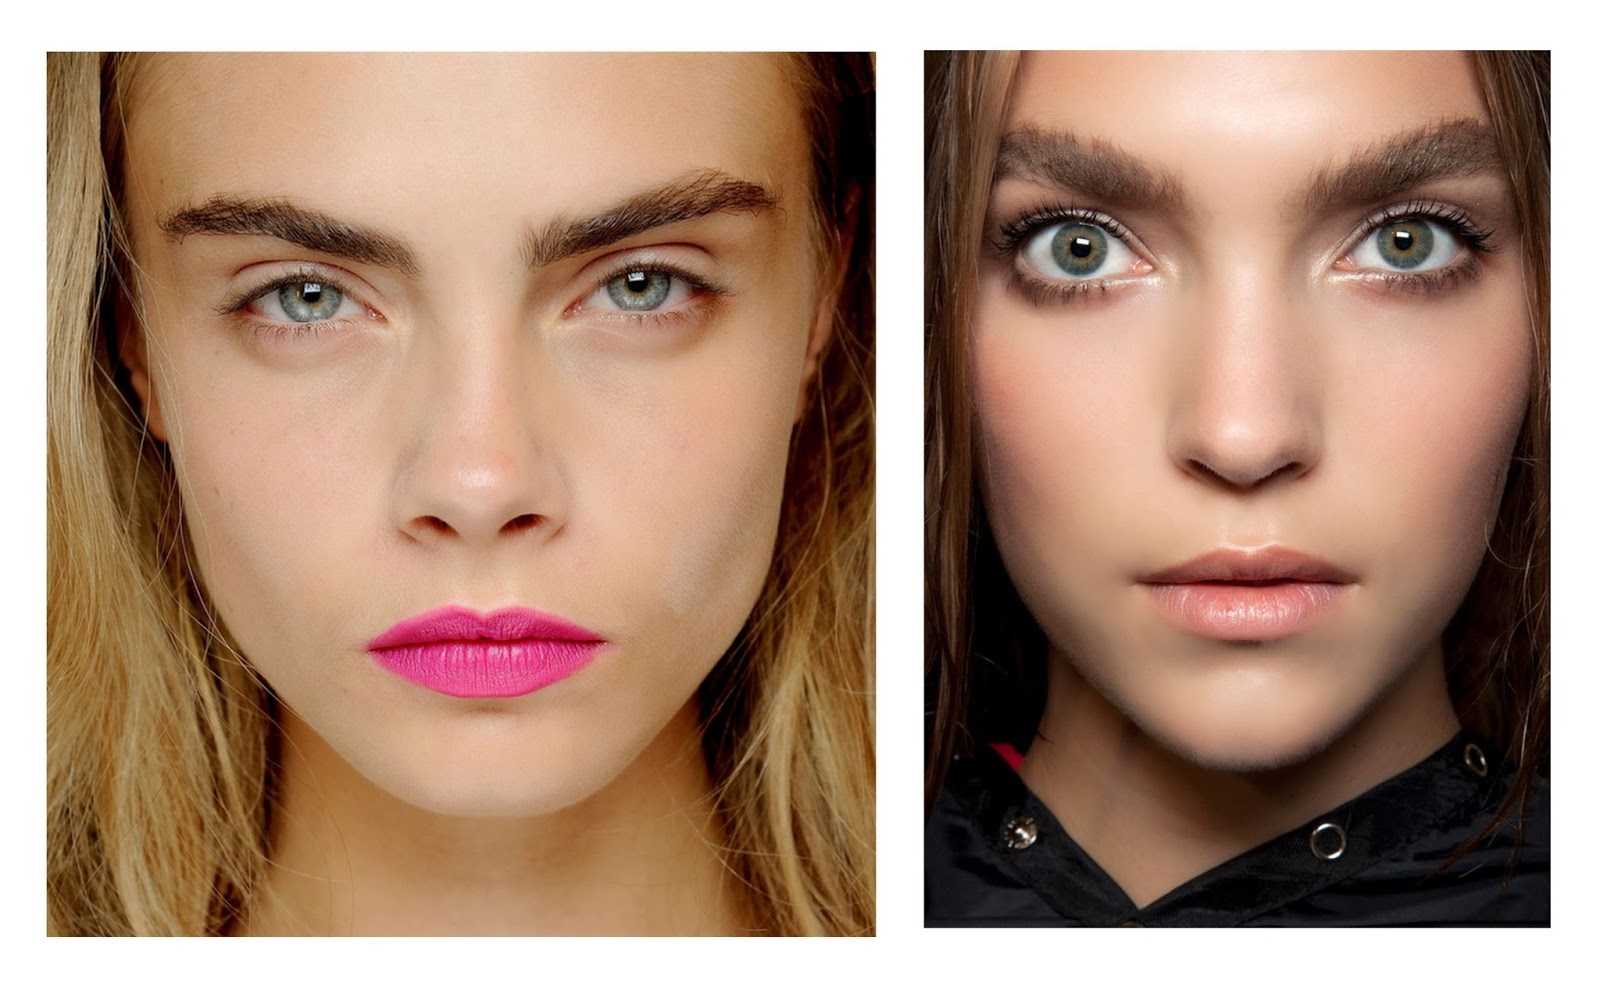 Cara Delevingne and Arizona Muse